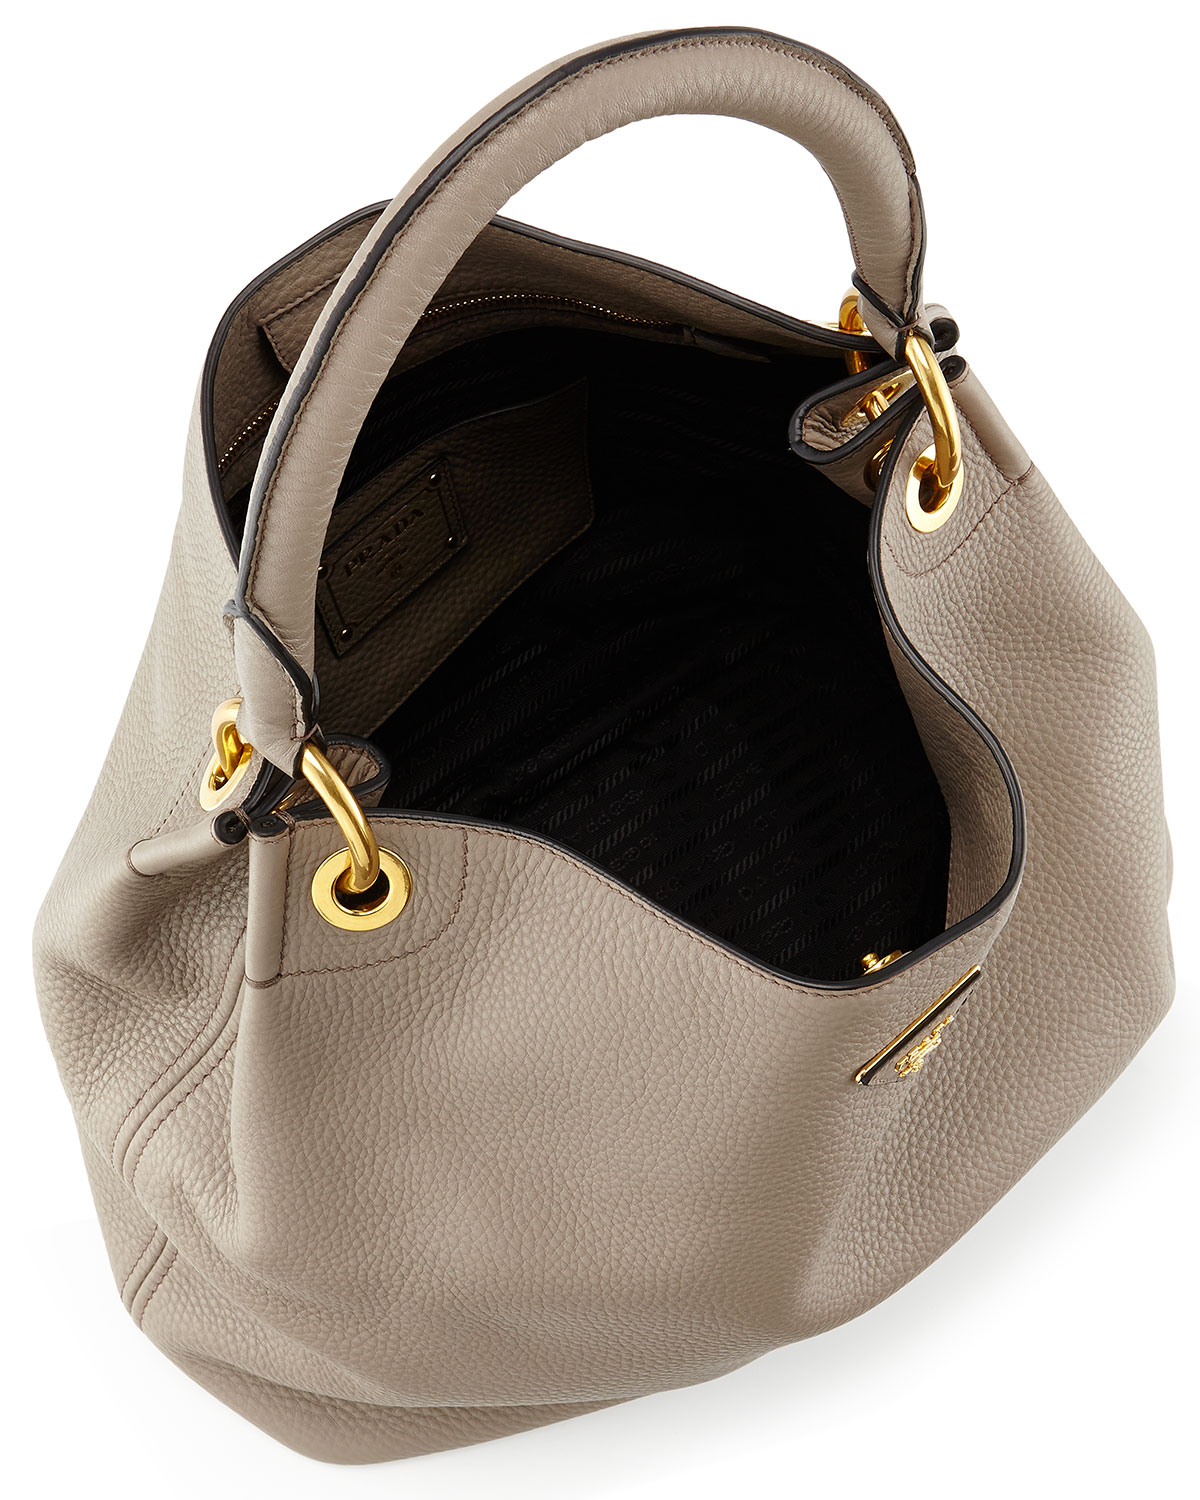 Prada Vitello Daino Single-strap Hobo Bag in Gray | Lyst